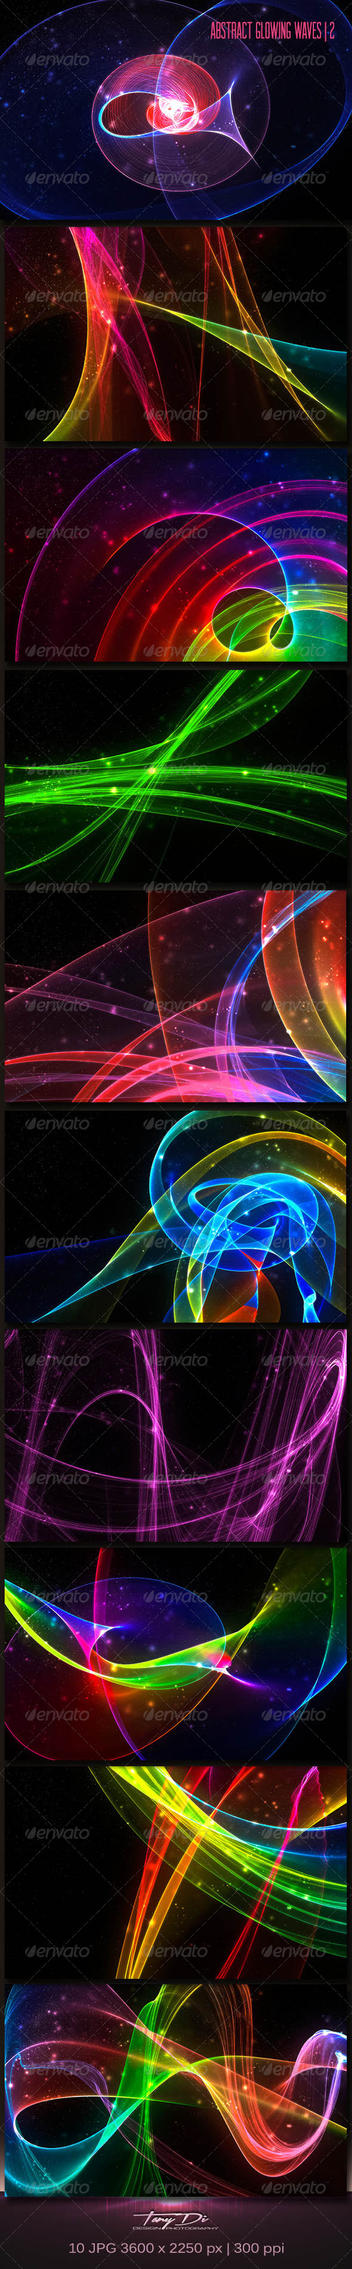 Abstract Glowing Waves 2 | GraphicRiver by AzureRayArt